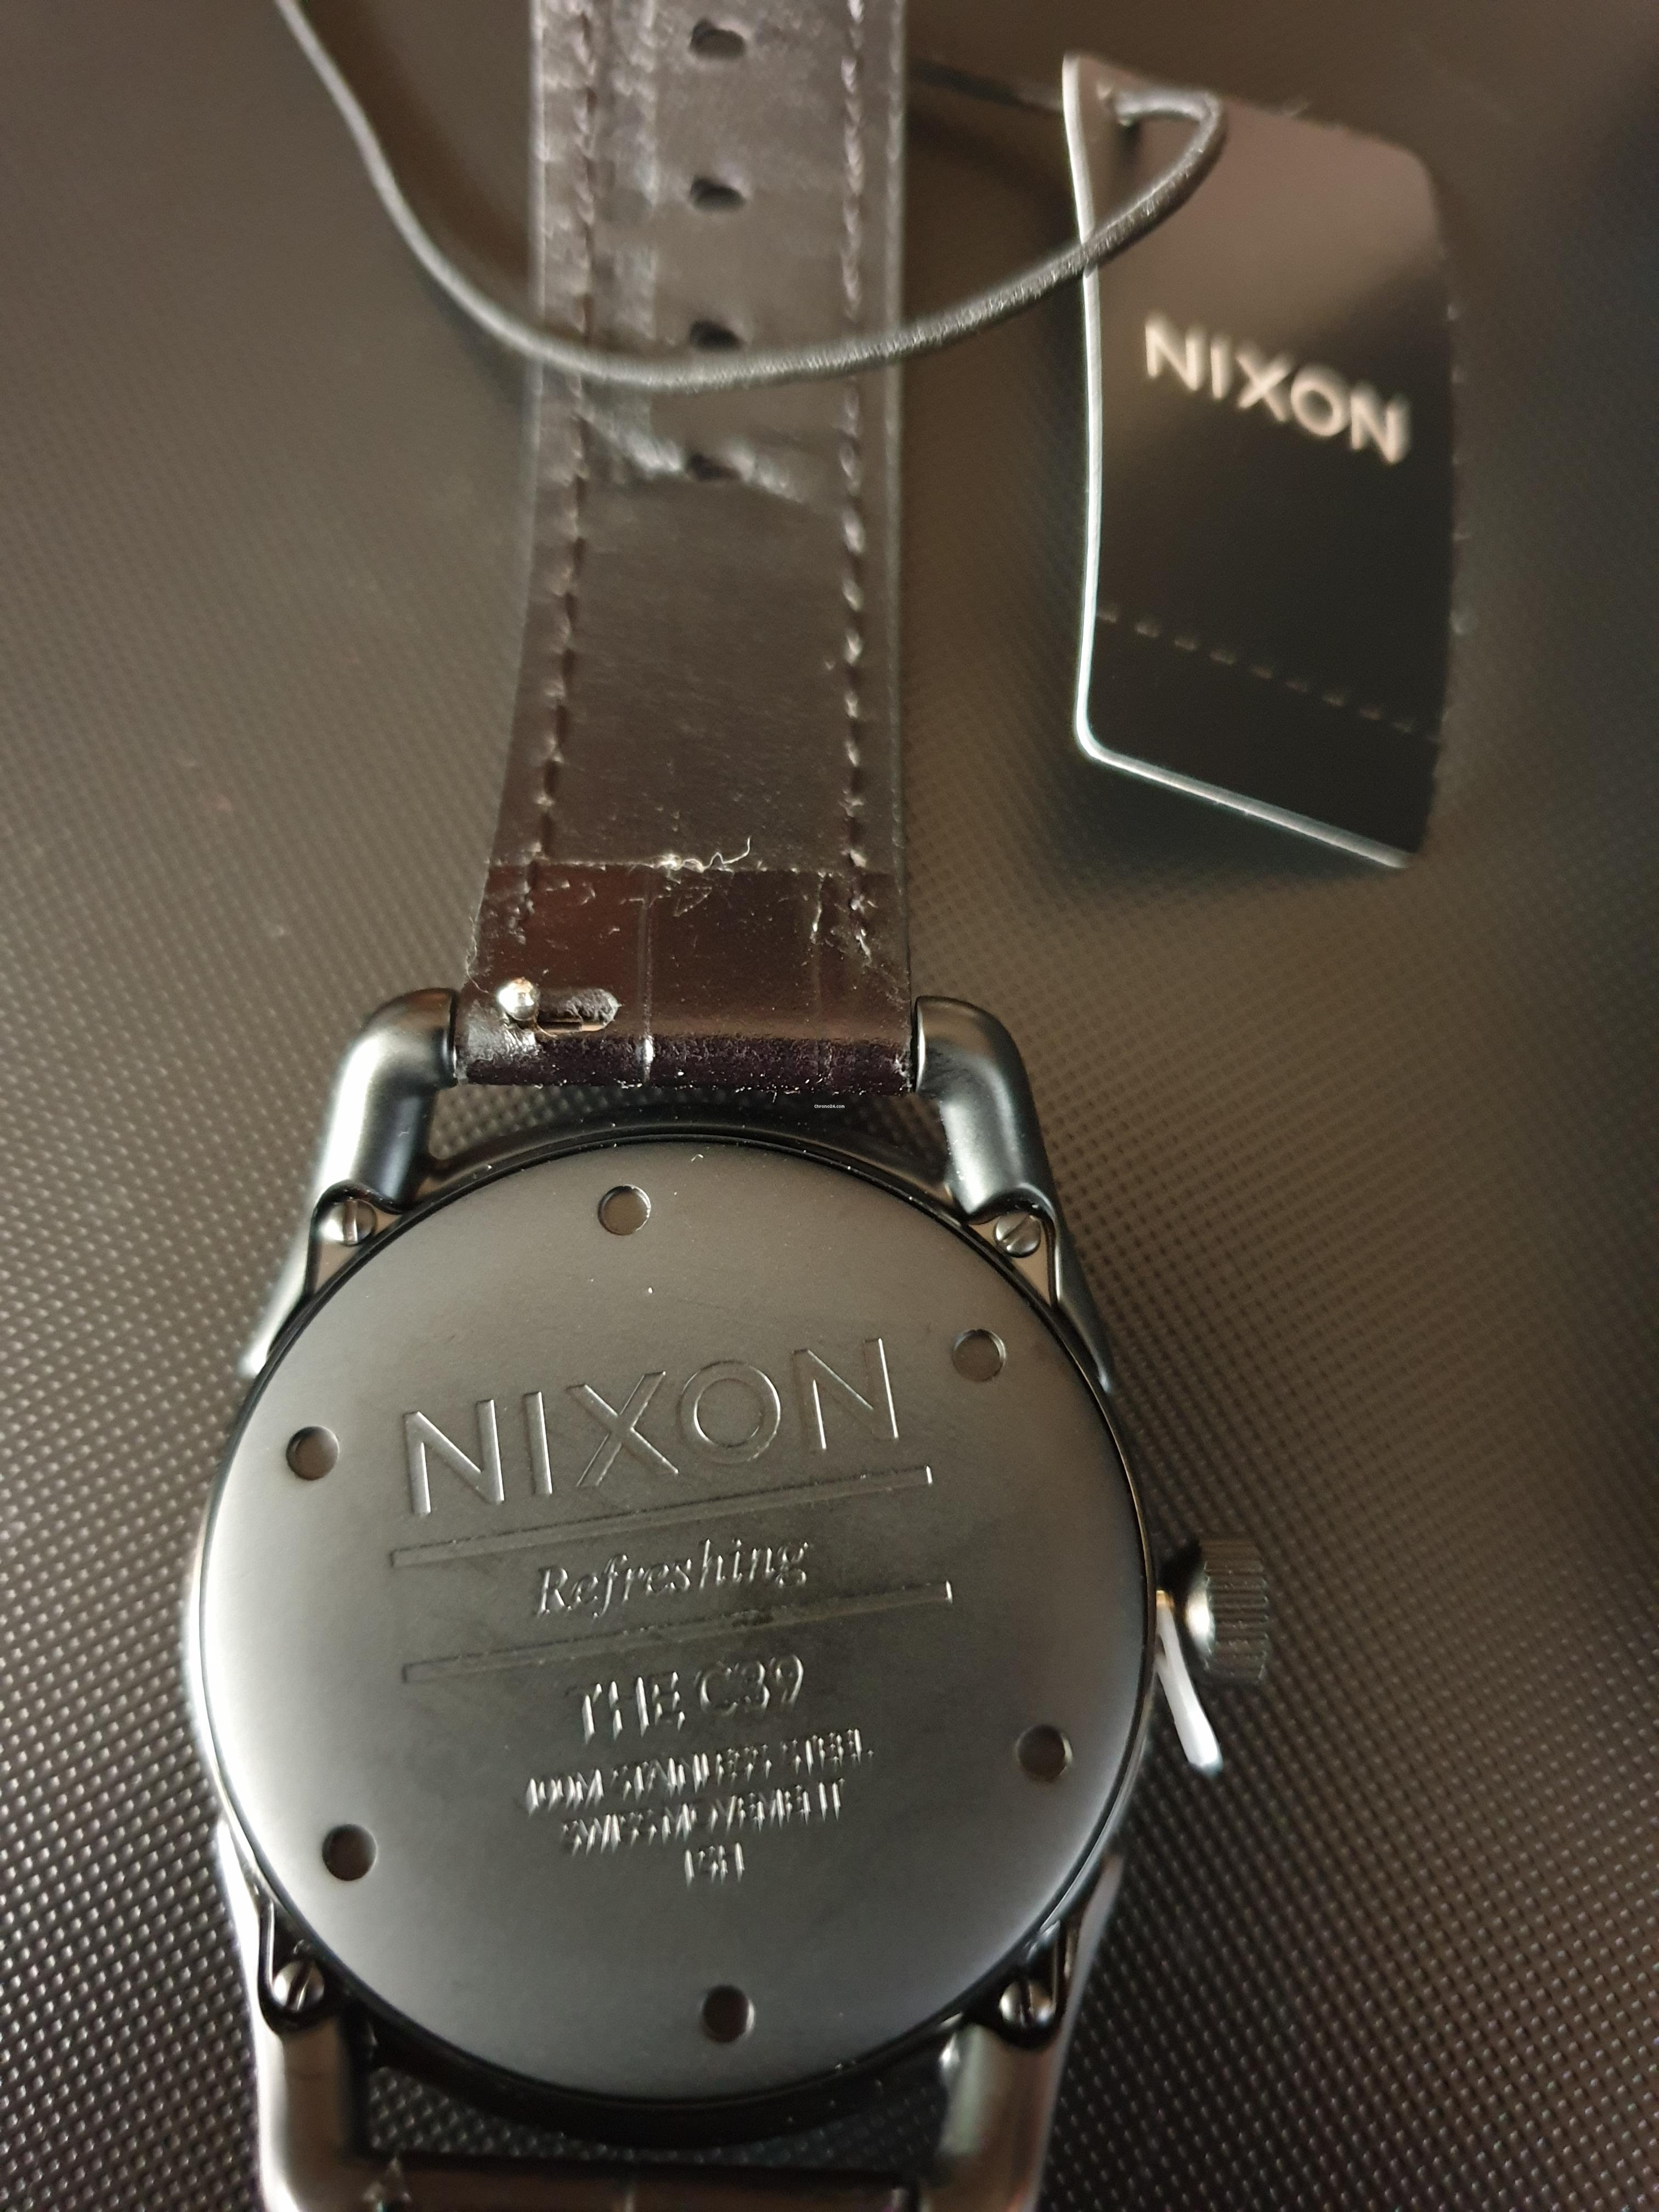 Rp4 734 Leather Watch A459 Nixon The Unisex 782 1886 C39 For PwOXiTkZu